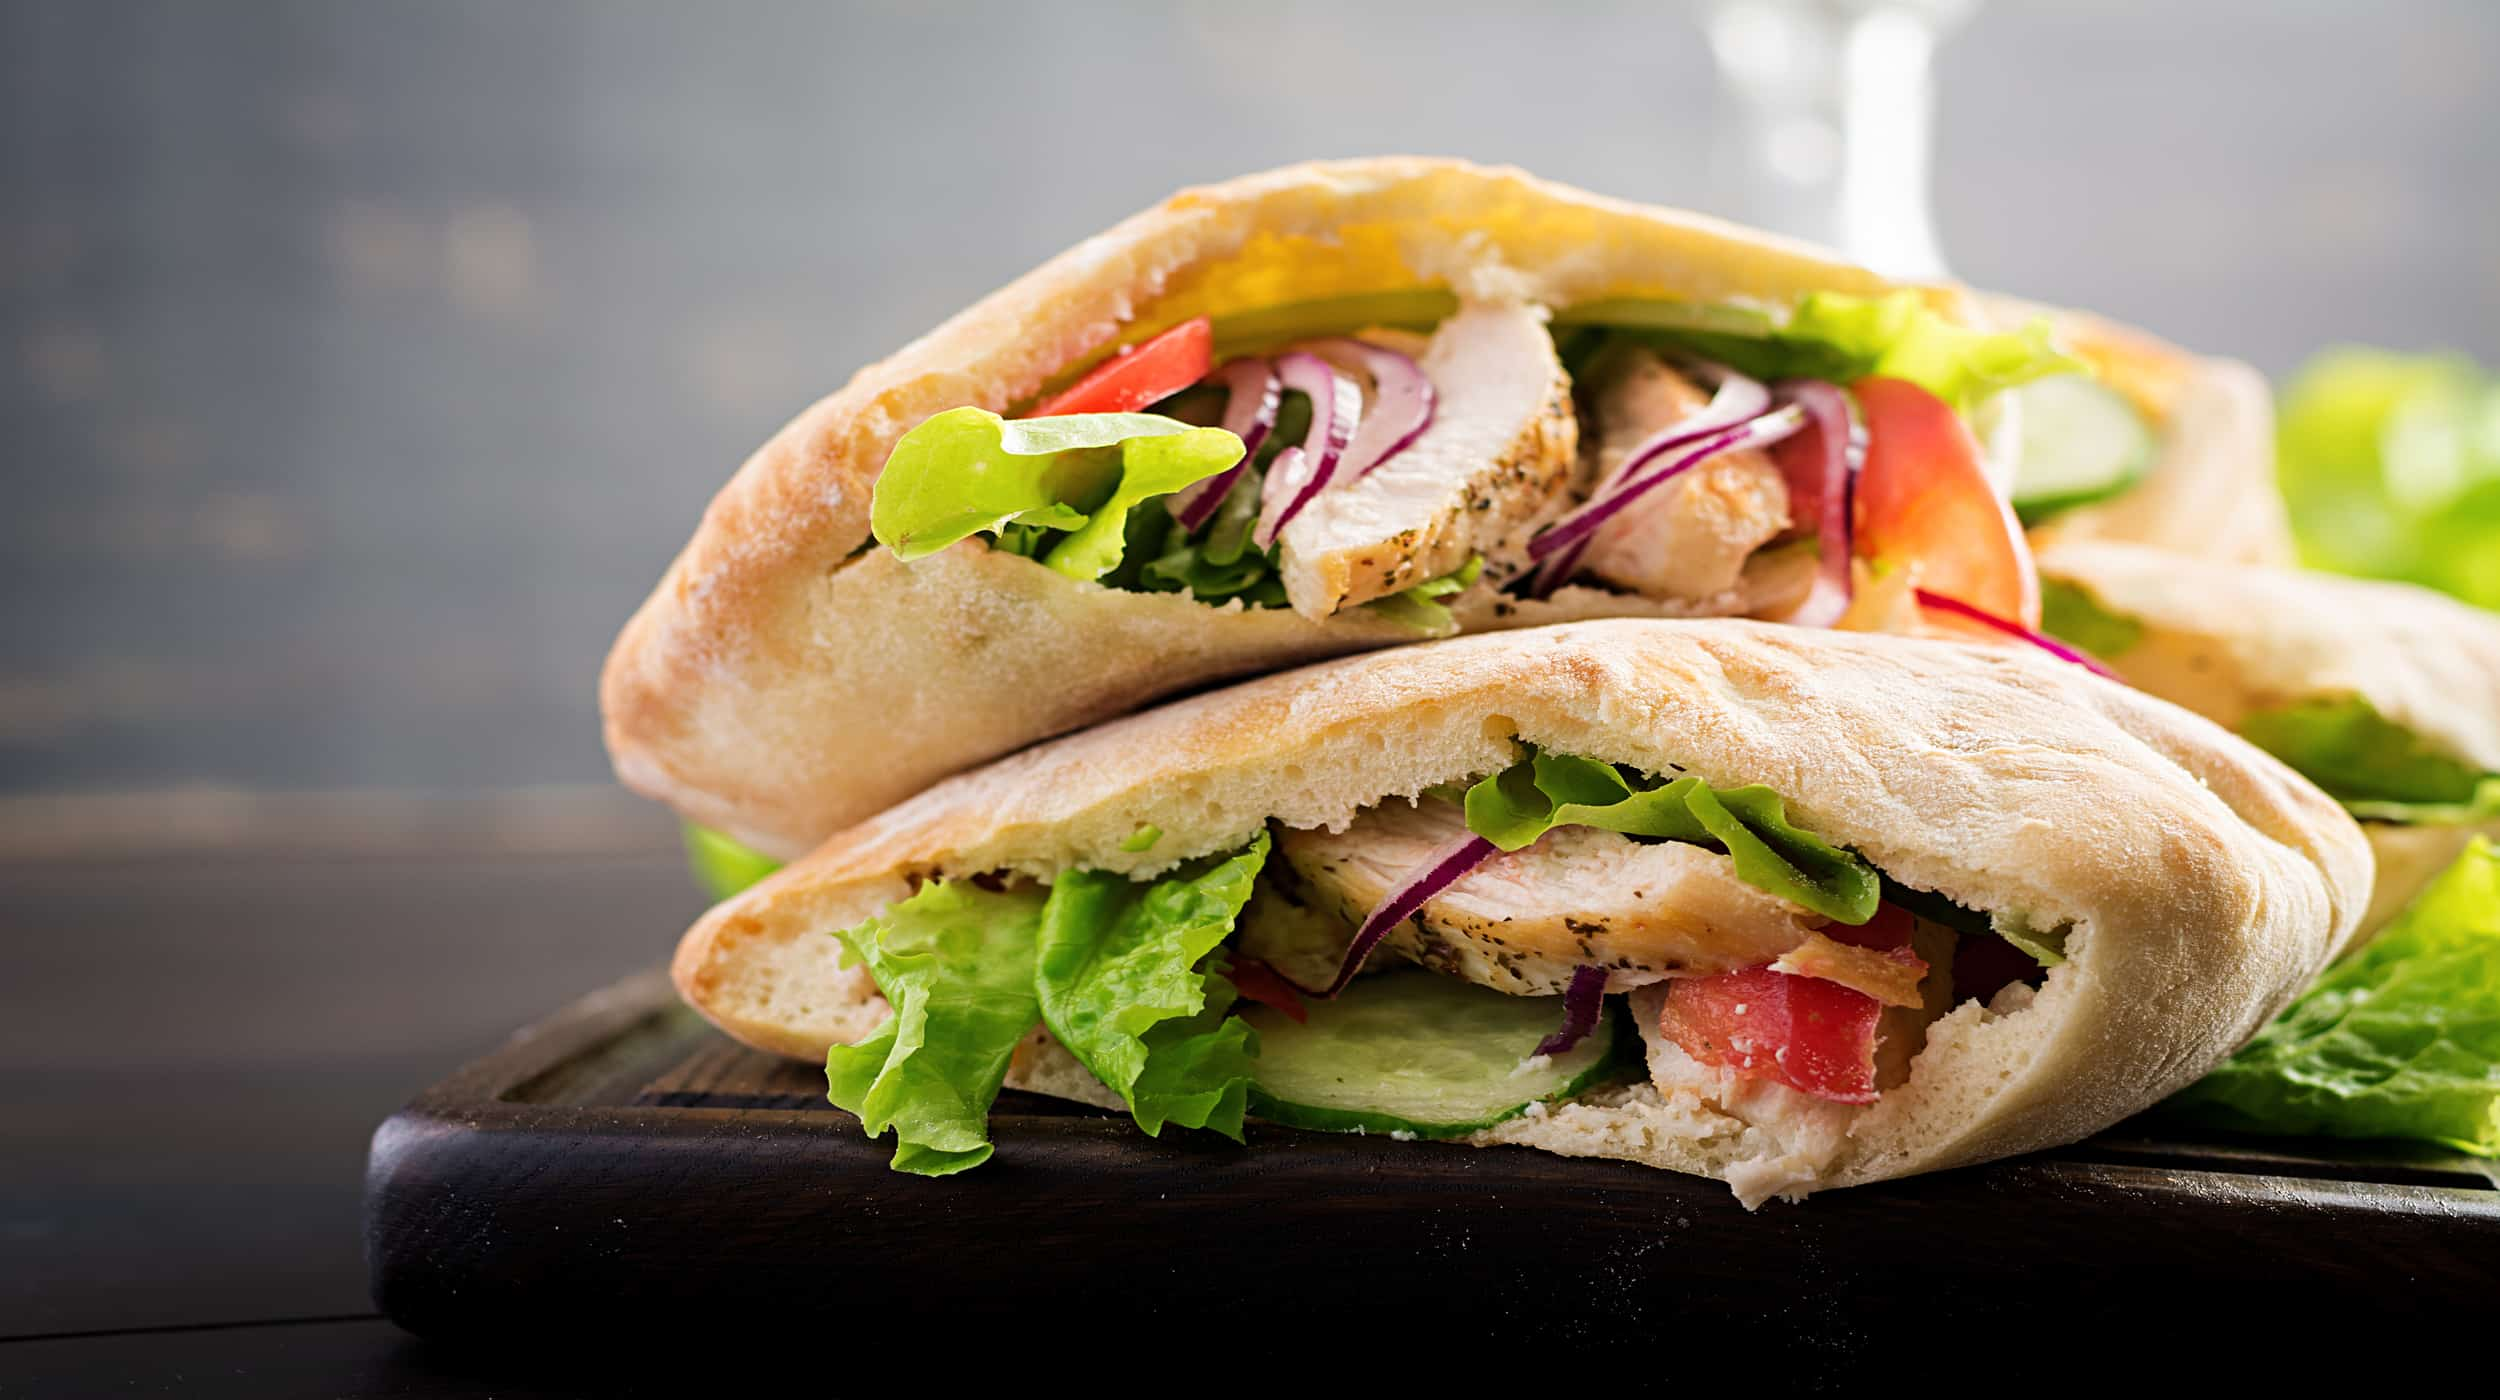 pita bread with chicken filling